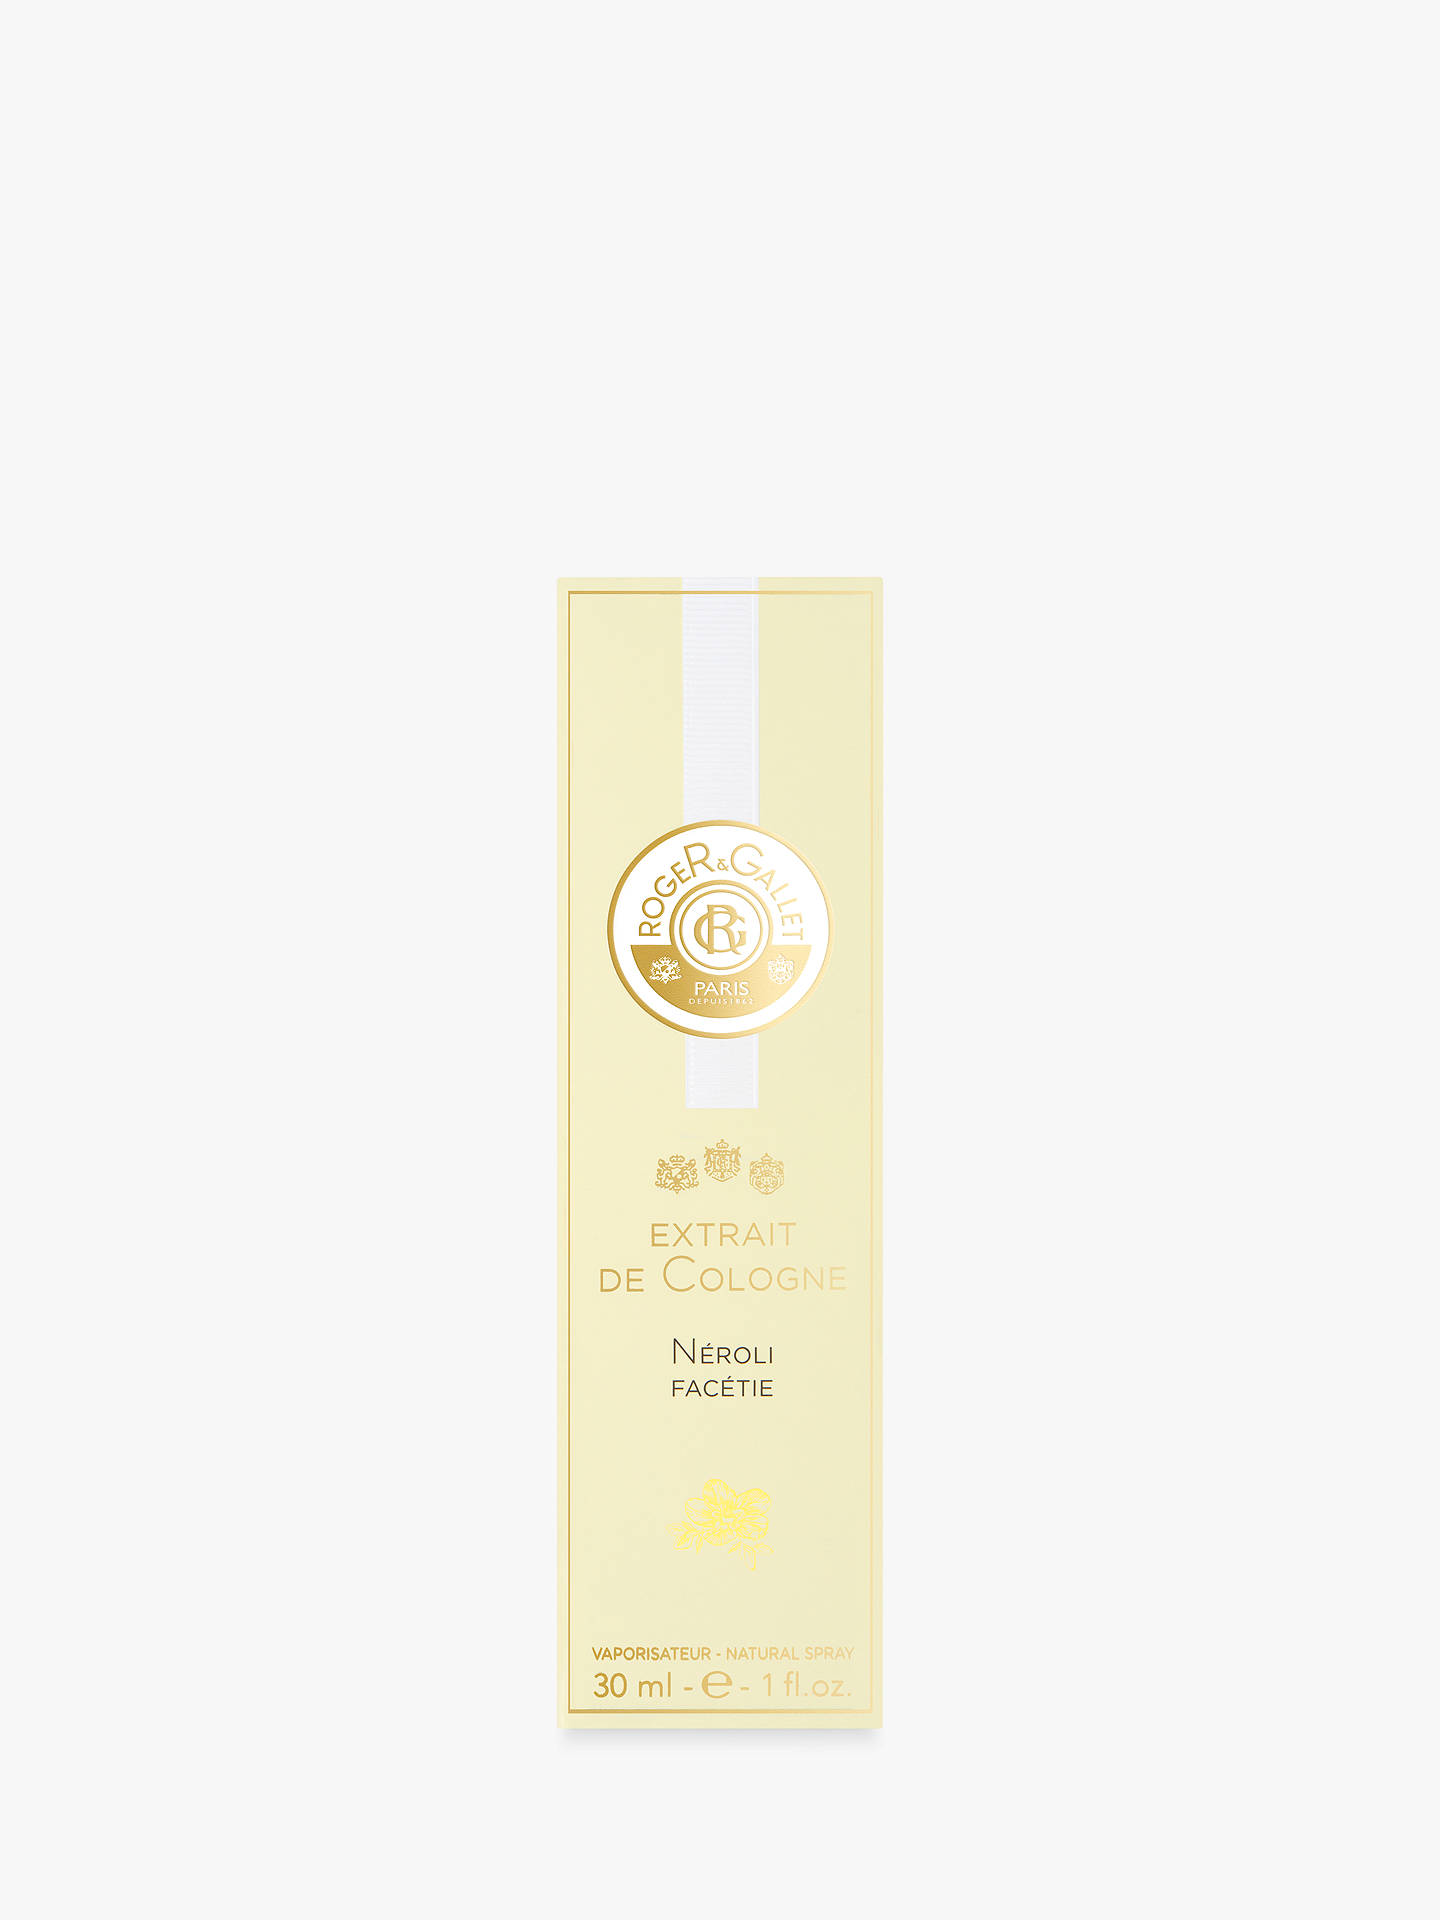 BuyRoger & Gallet Neroli Facetie Extract de Cologne, 30ml Online at johnlewis.com